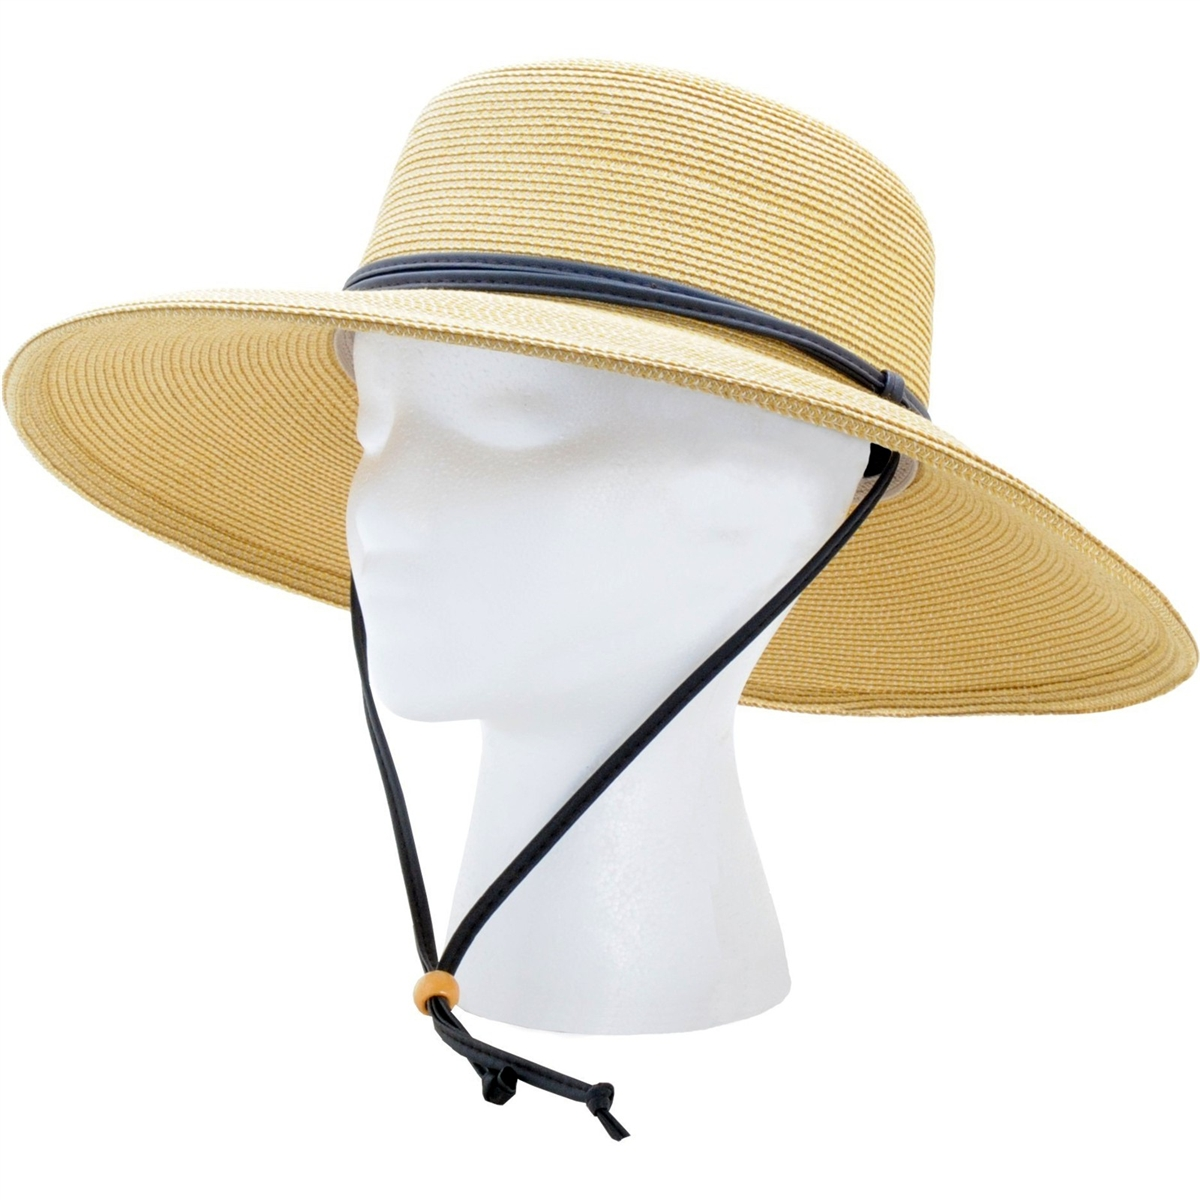 Sloggers Women s Braided Sun Hat with Wind Lanyard UPF 50+ Maximum ... dfde4decabd